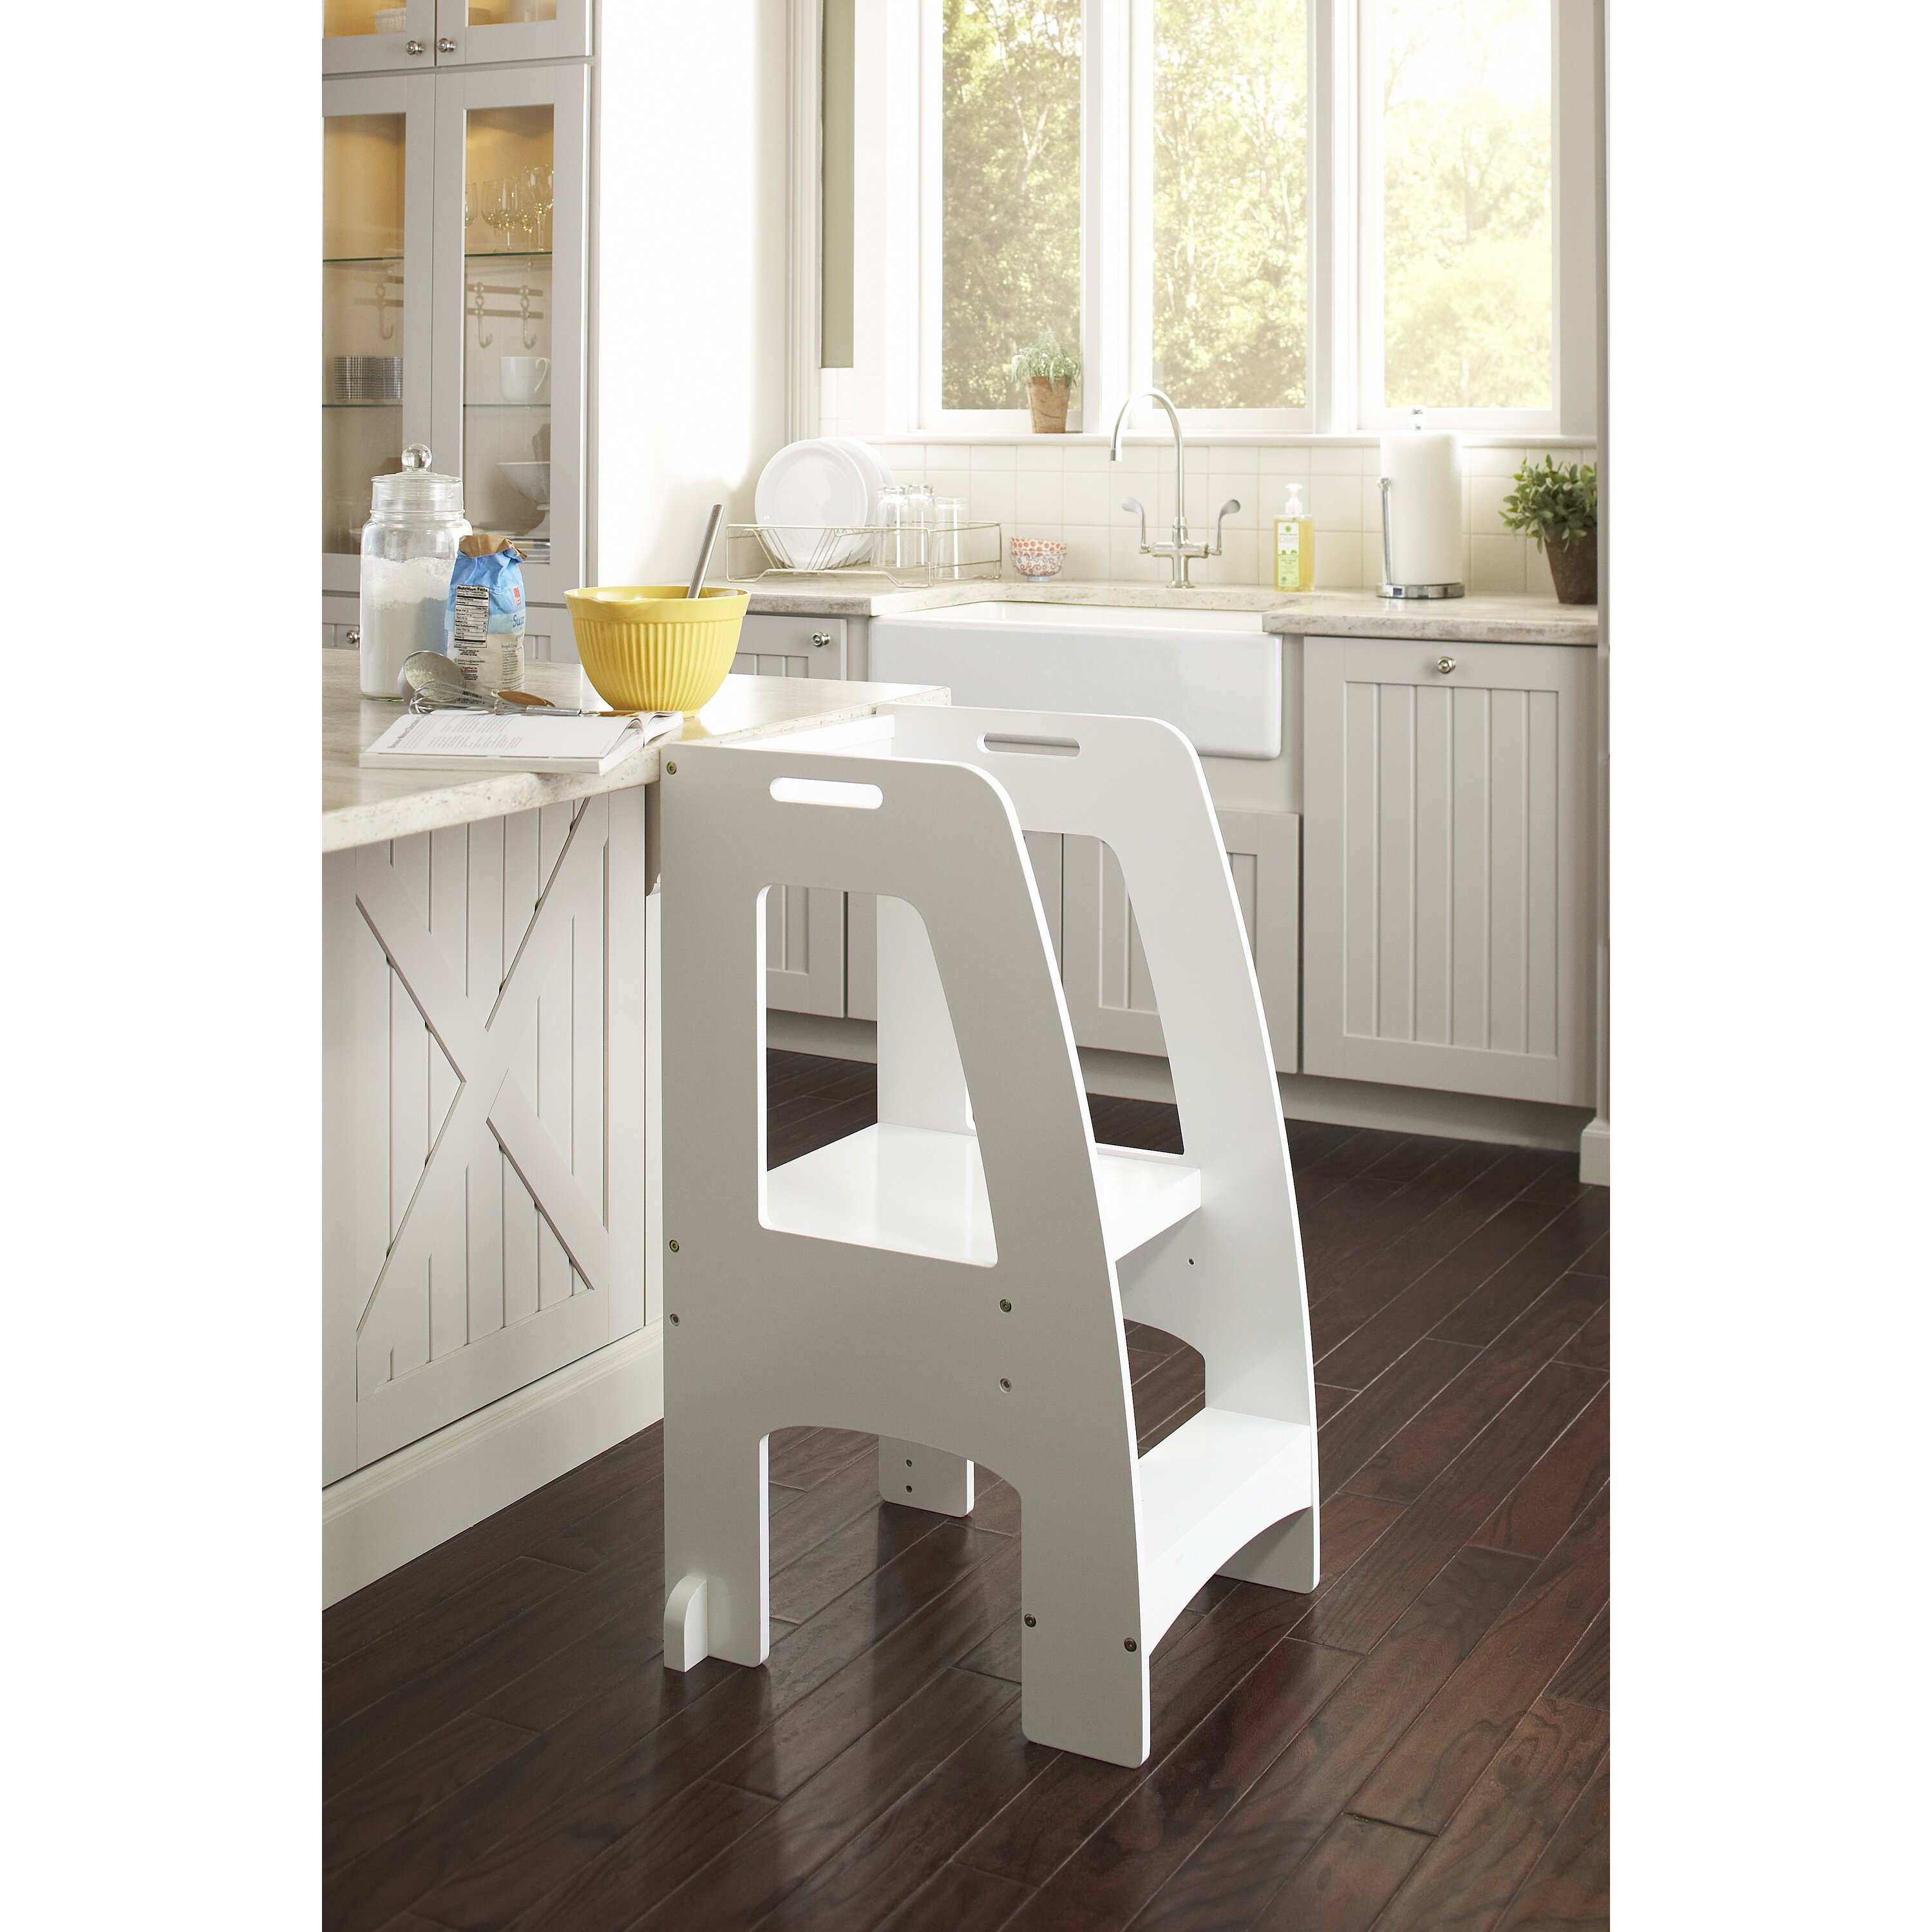 Wooden step stool for kitchen - Guidecraft Household Helper 2 Step Kitchen Helper